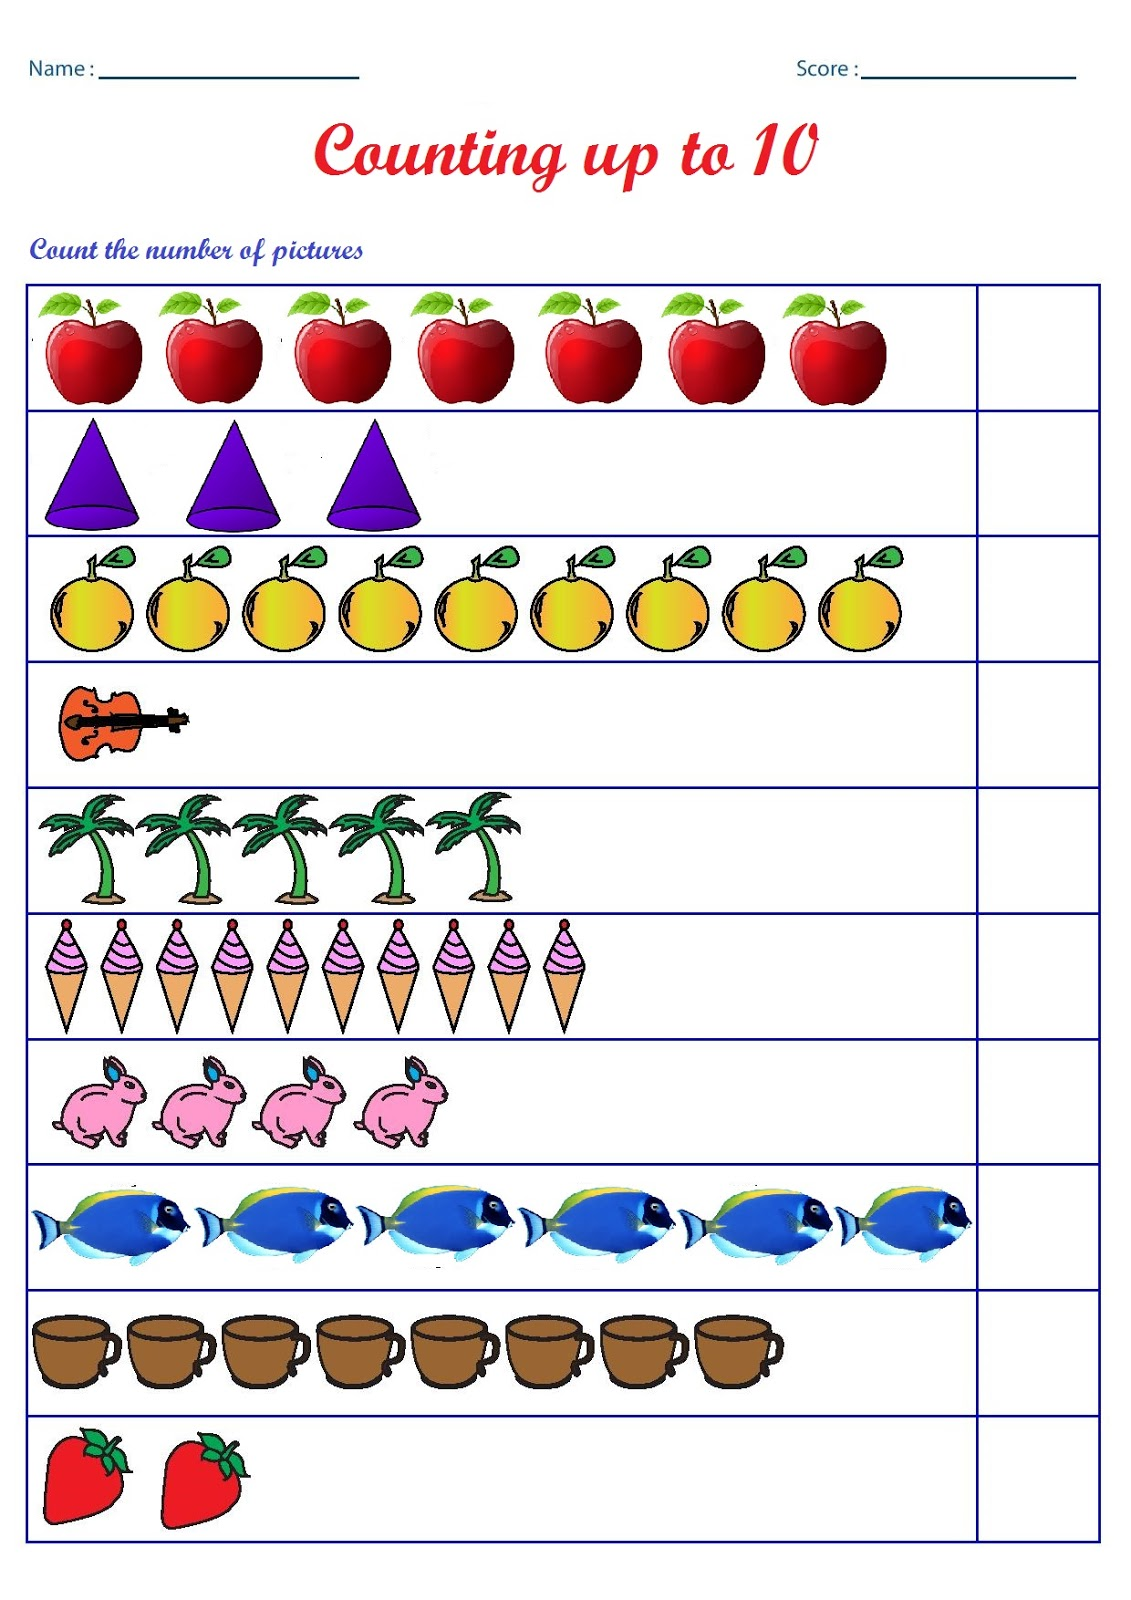 Kindergarten Worksheets: Counting Worksheets - Count the ...